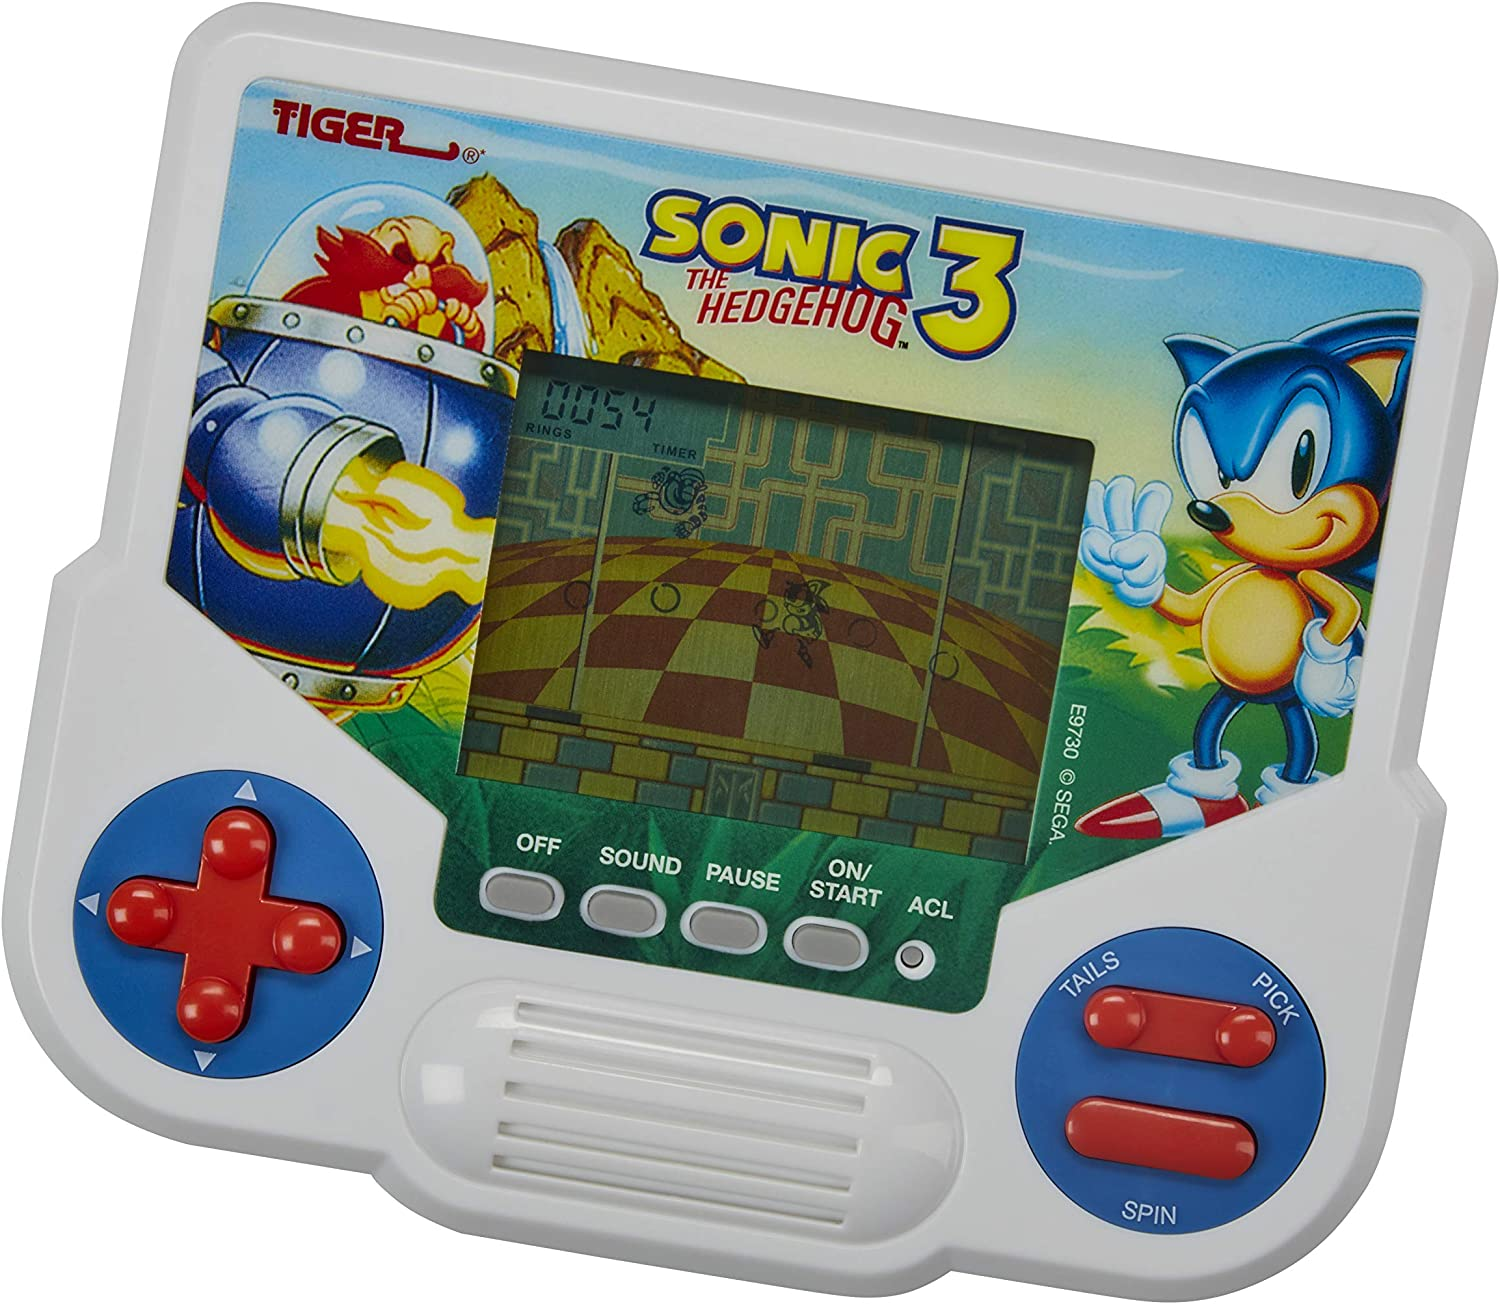 Tiger Electronics Sonic The Hedgehog 3 Electronic LCD Video Game, Retro-Inspired Edition, Handheld 1-Player Game, Ages 8 and Up: Toys & Games